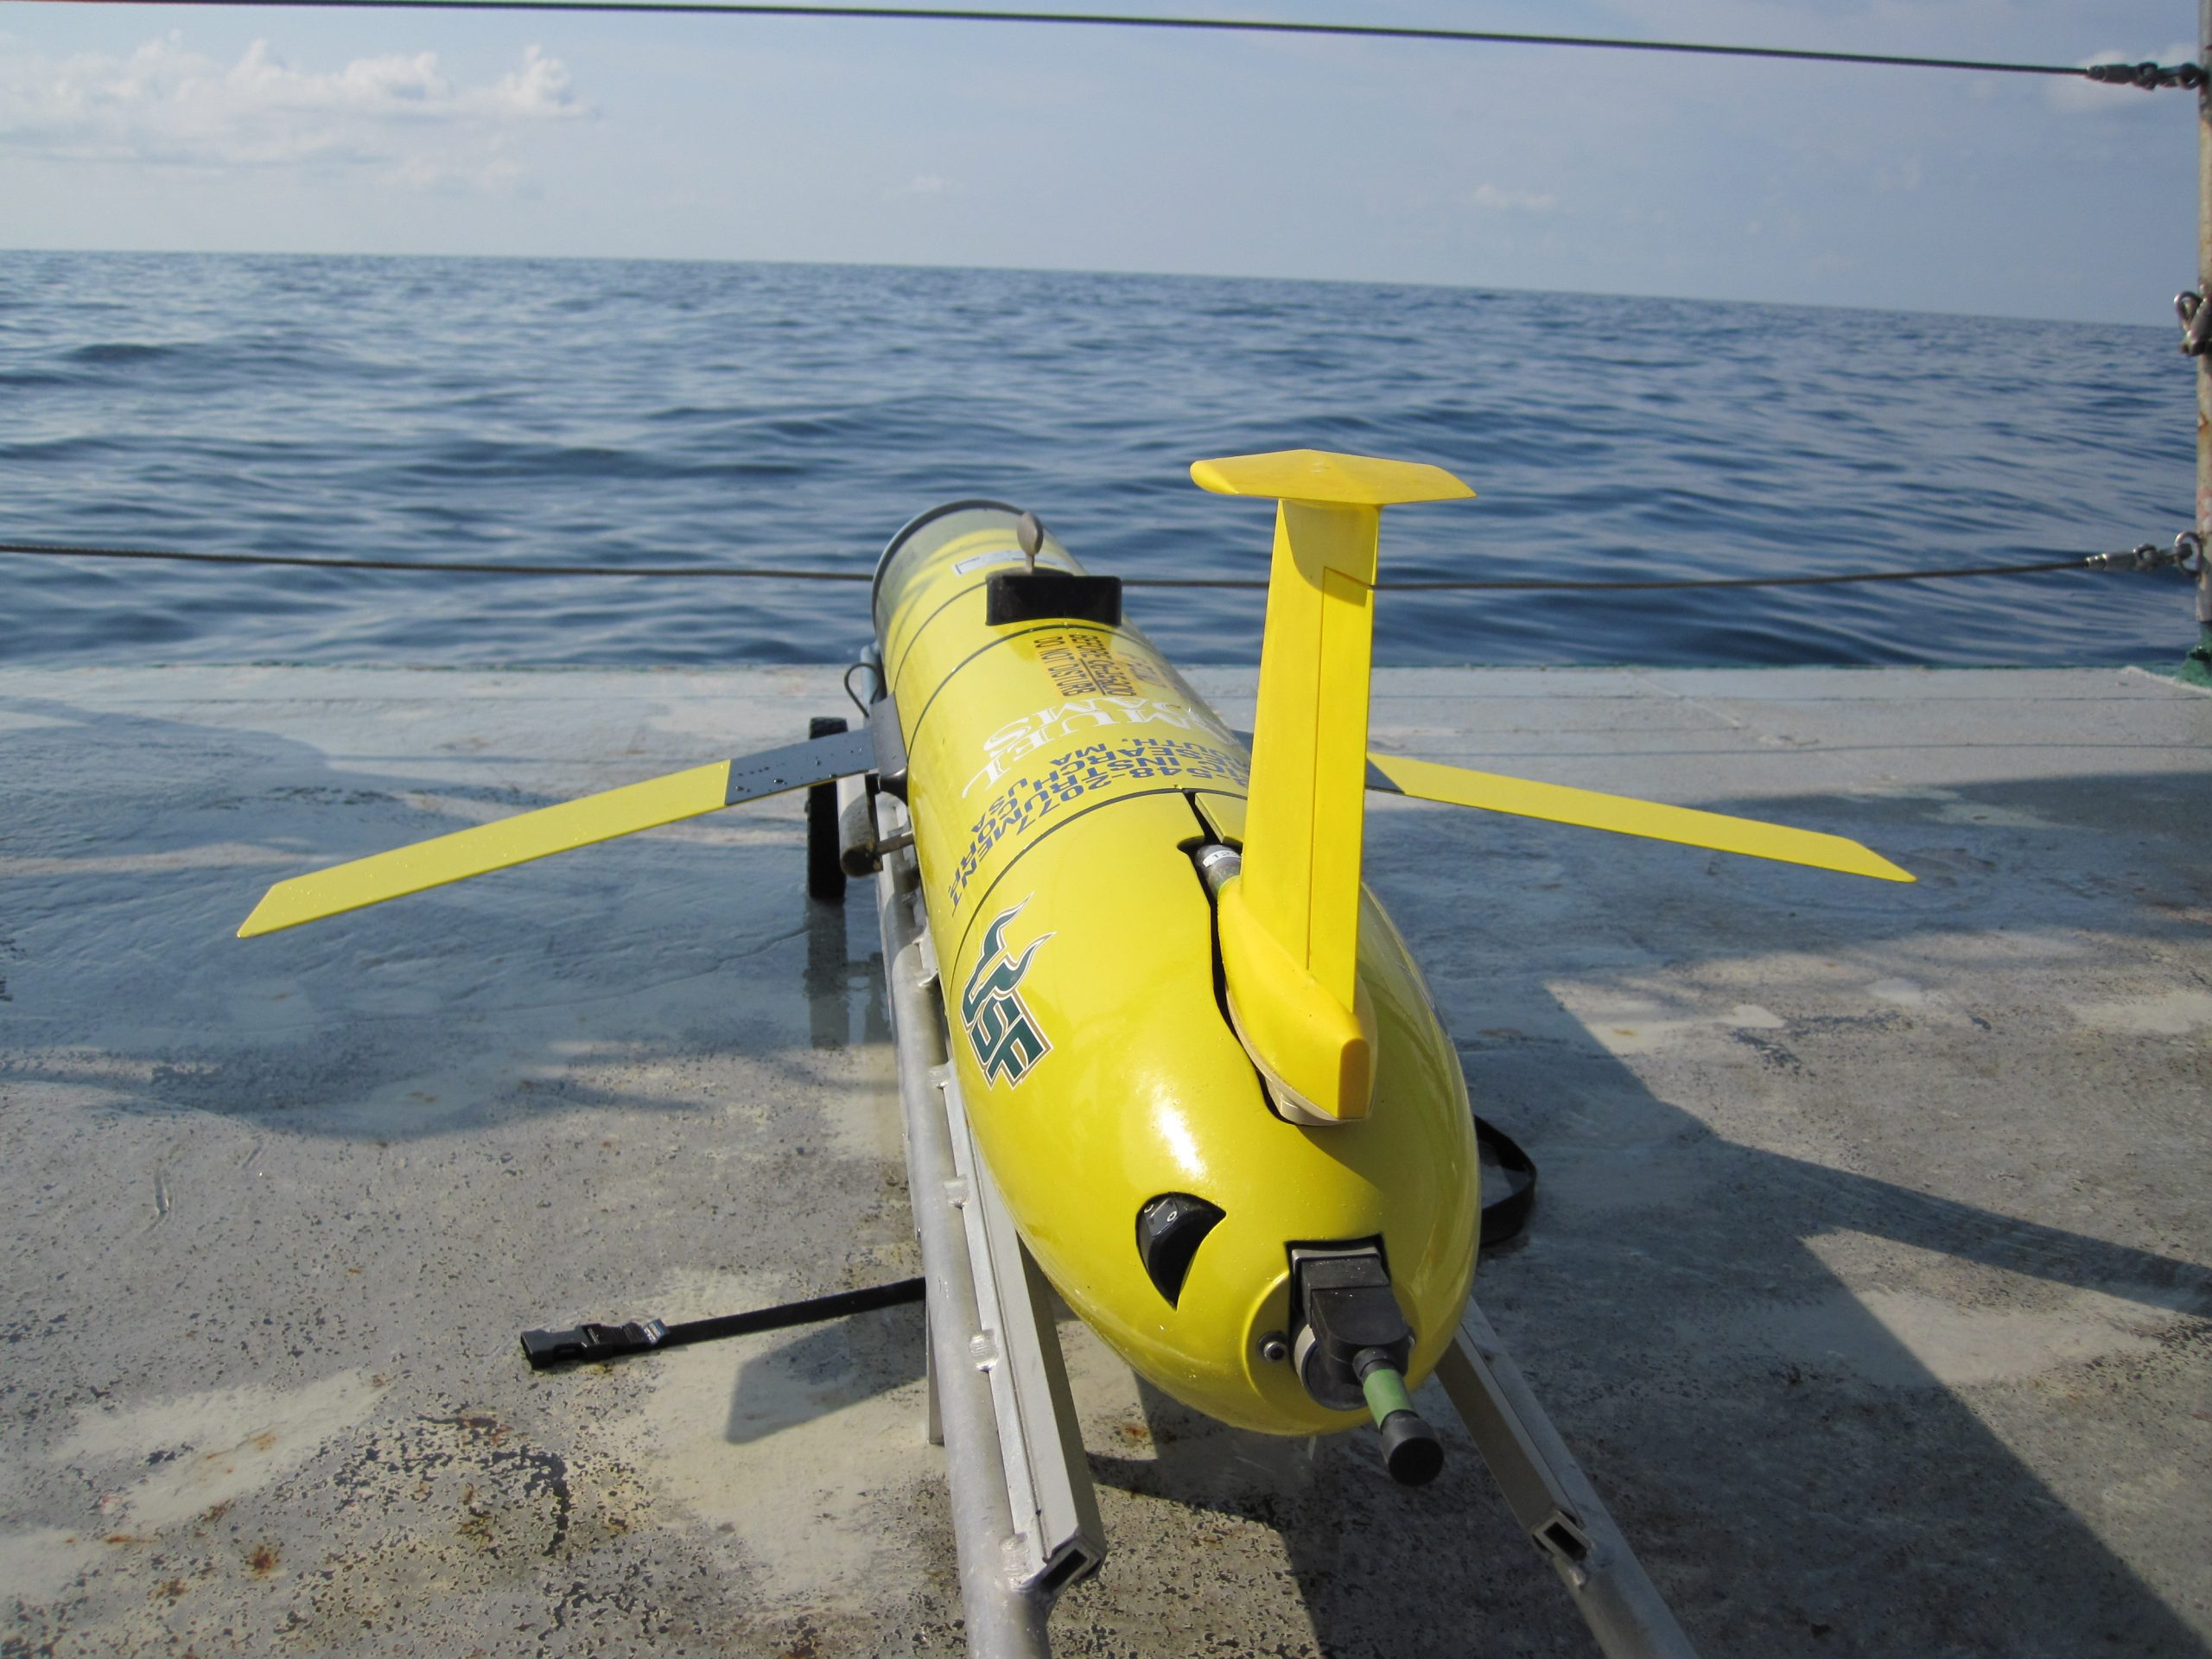 USF Glider prepared for deployment in the northern Gulf of Mexico for researching water column properties near the Deepwater Horizon oil spill in May 2010. (Vessel R/V Weatherbird, photo credit Andrew Warren)